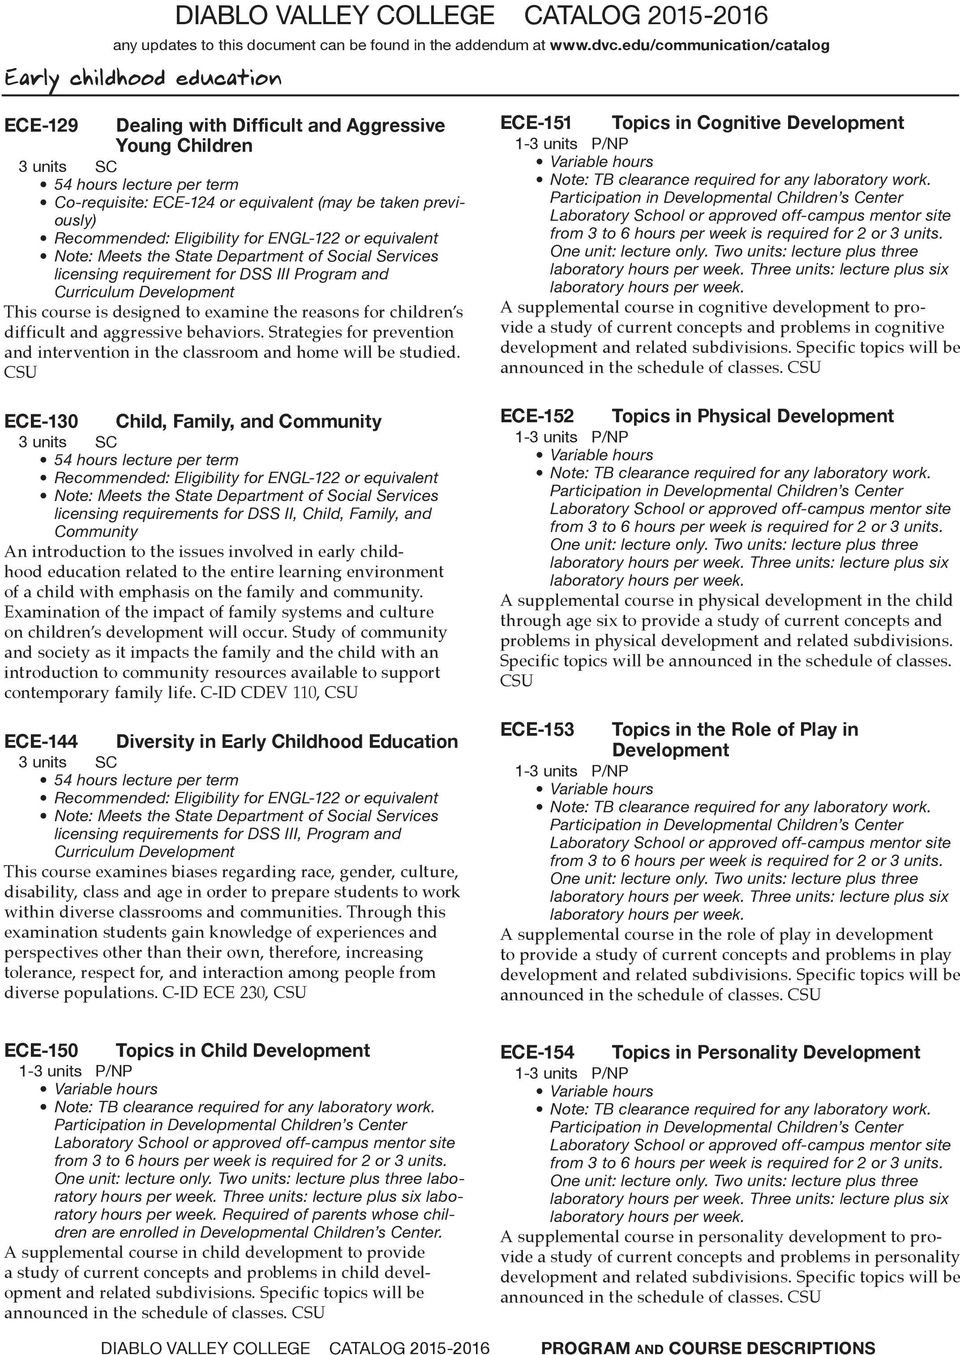 CSU ECE-130 Child, Family, and Community licensing requirements for DSS II, Child, Family, and Community An introduction to the issues involved in early childhood education related to the entire